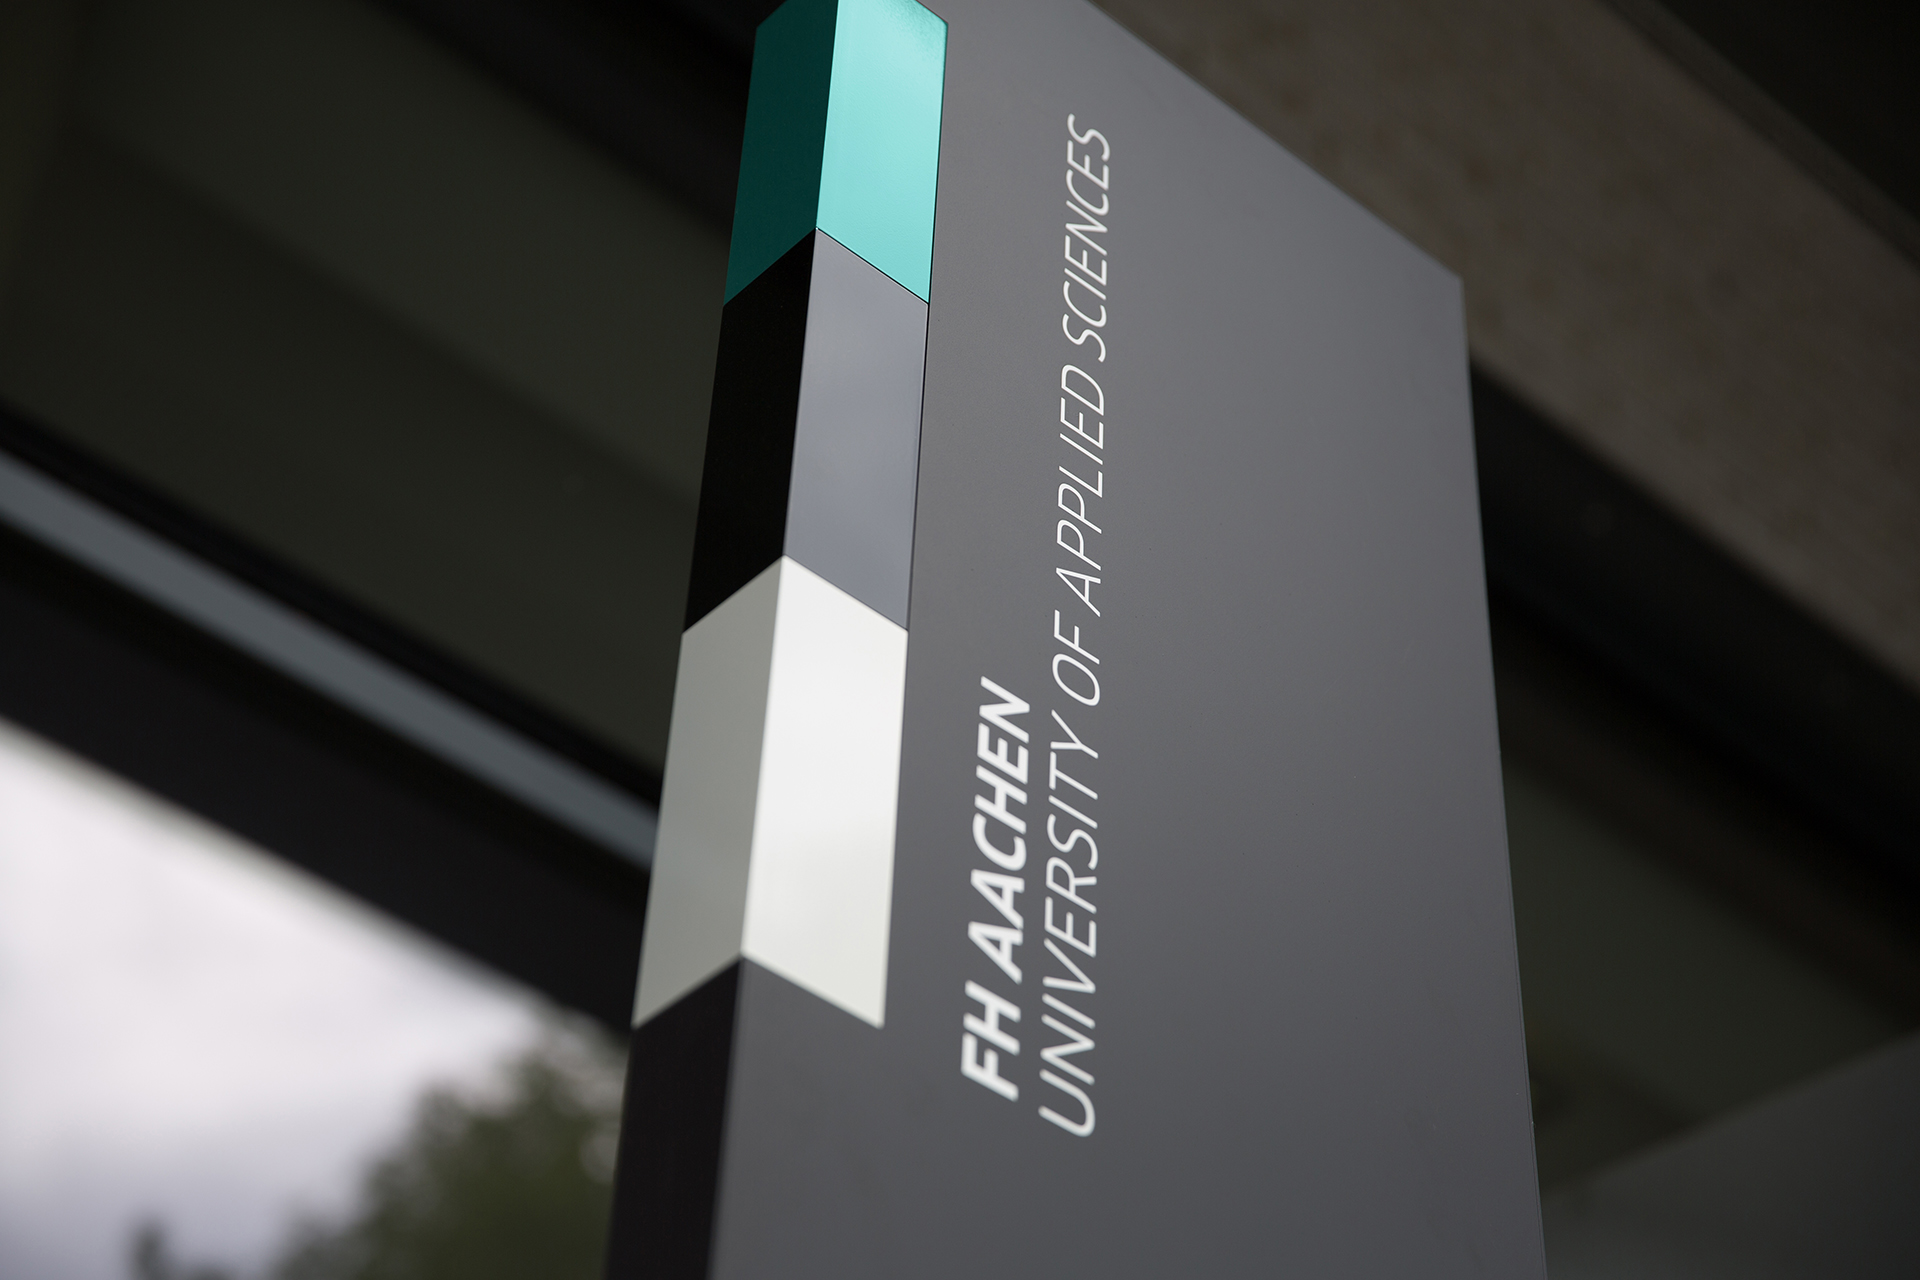 Corporate Design der FH Aachen